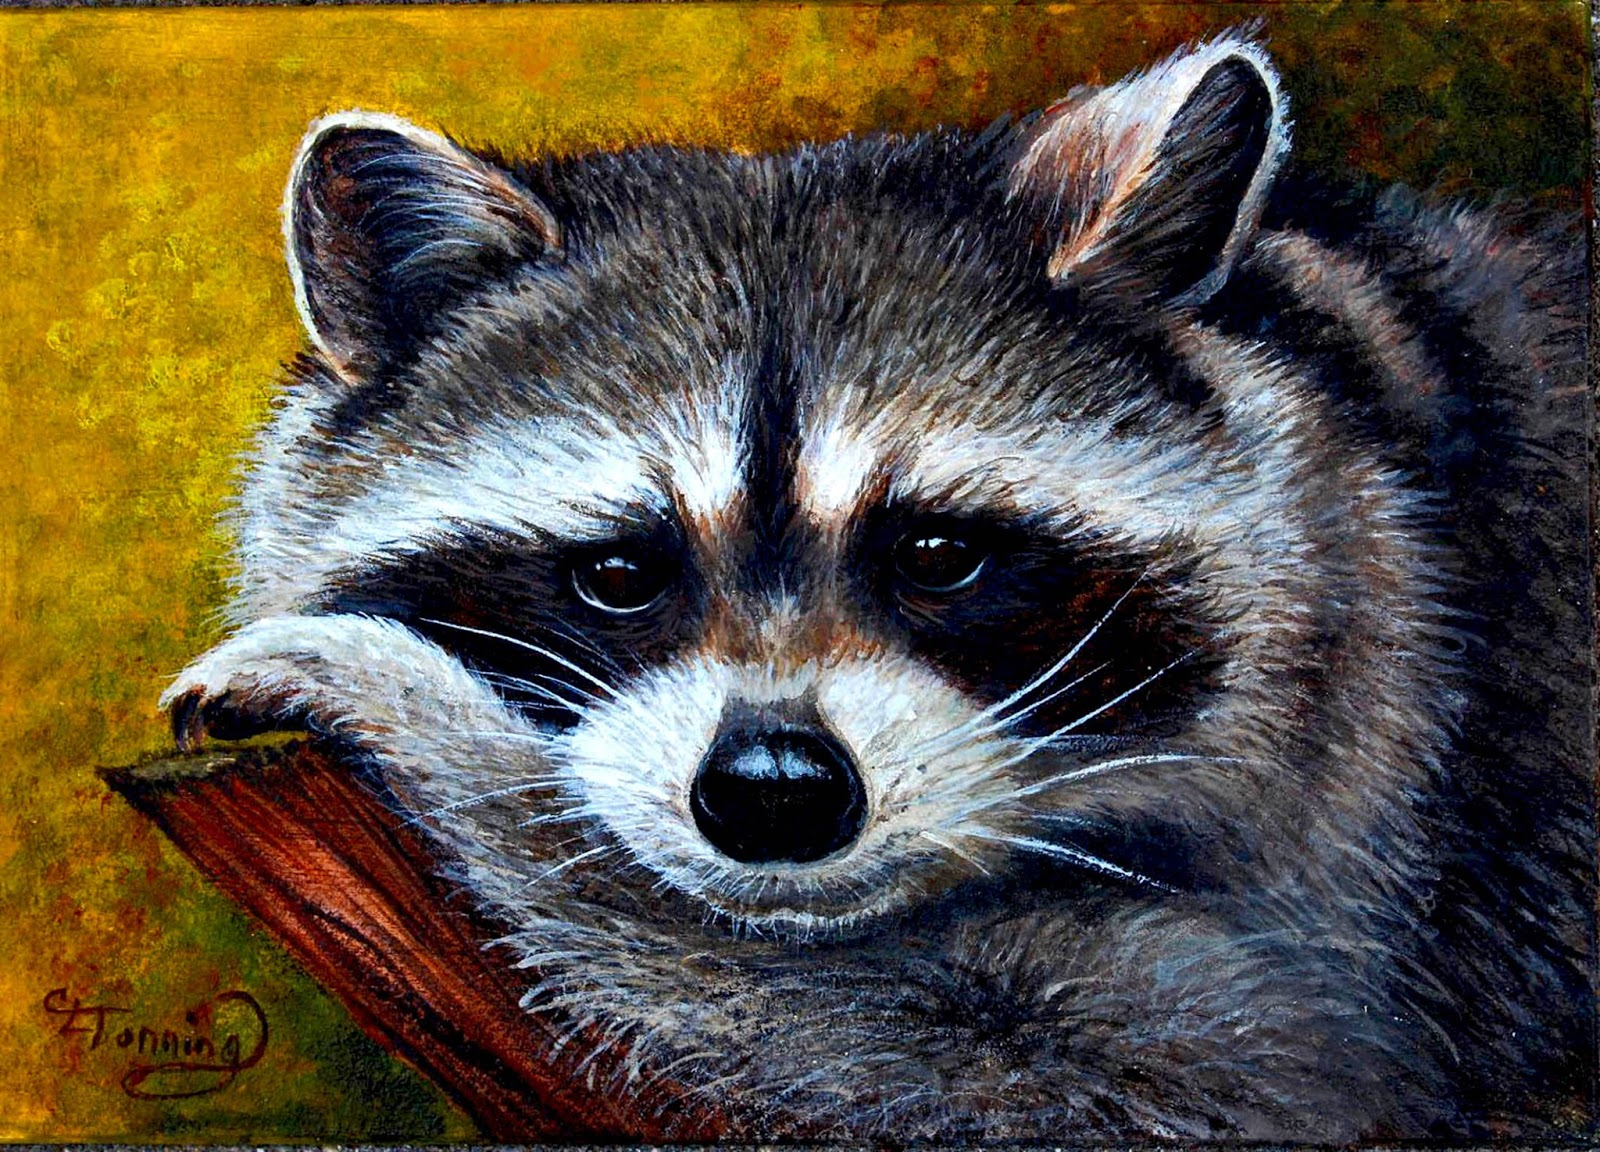 Catherine's stories: April 2013 Raccoon Painting